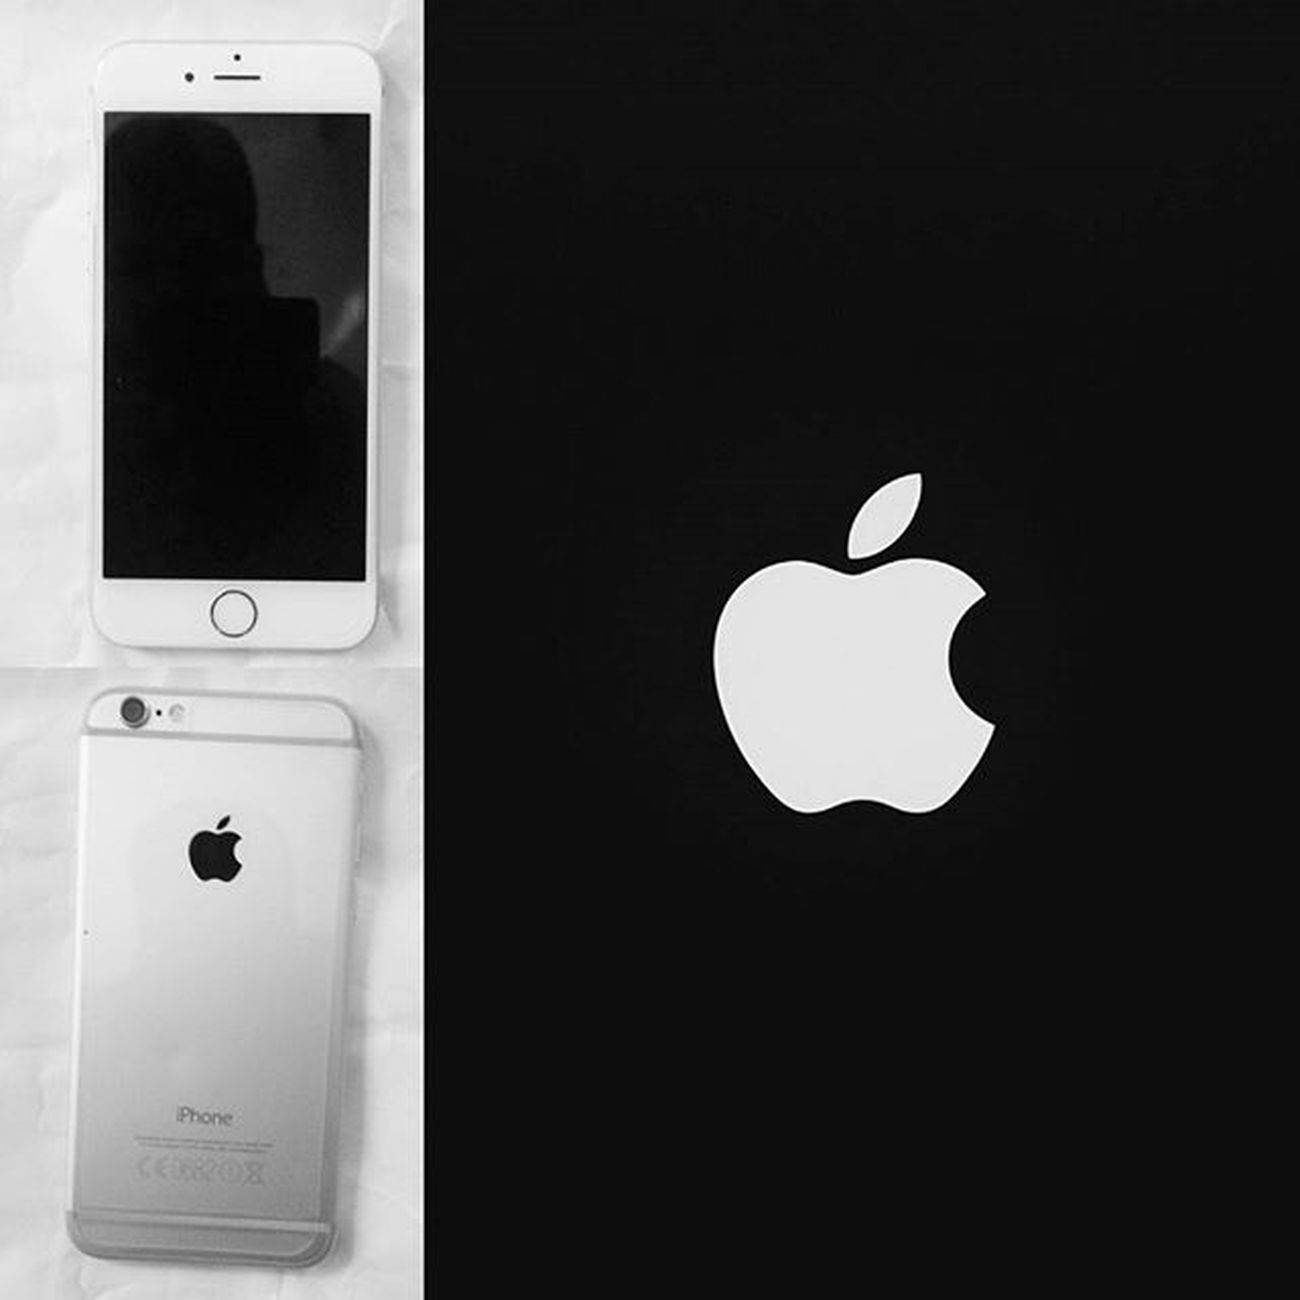 Apple Ios IOS9 Picoftheday Fotofriday Oneplus Oneplusone Oneplusonephotography Onepluslife Oneplustech Nofilter Layout Insta Instapic Instagood Instadaily Instamood Instalike Instapic LearningPhotography Mblclk